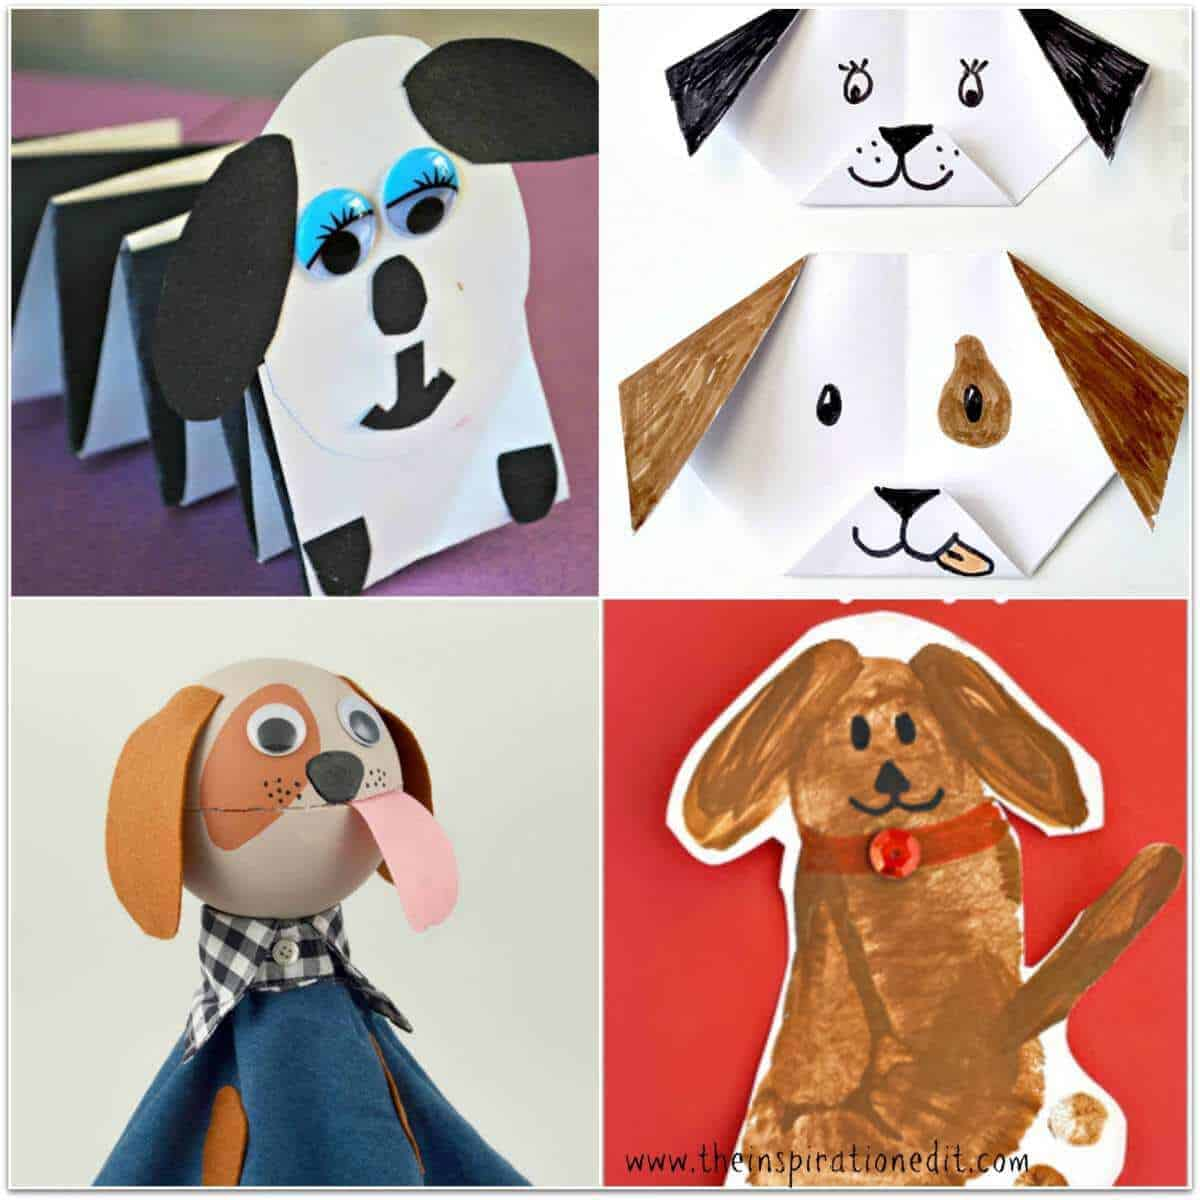 13 Super Cute Dog Crafts Kids Will Love · The Inspiration Edit